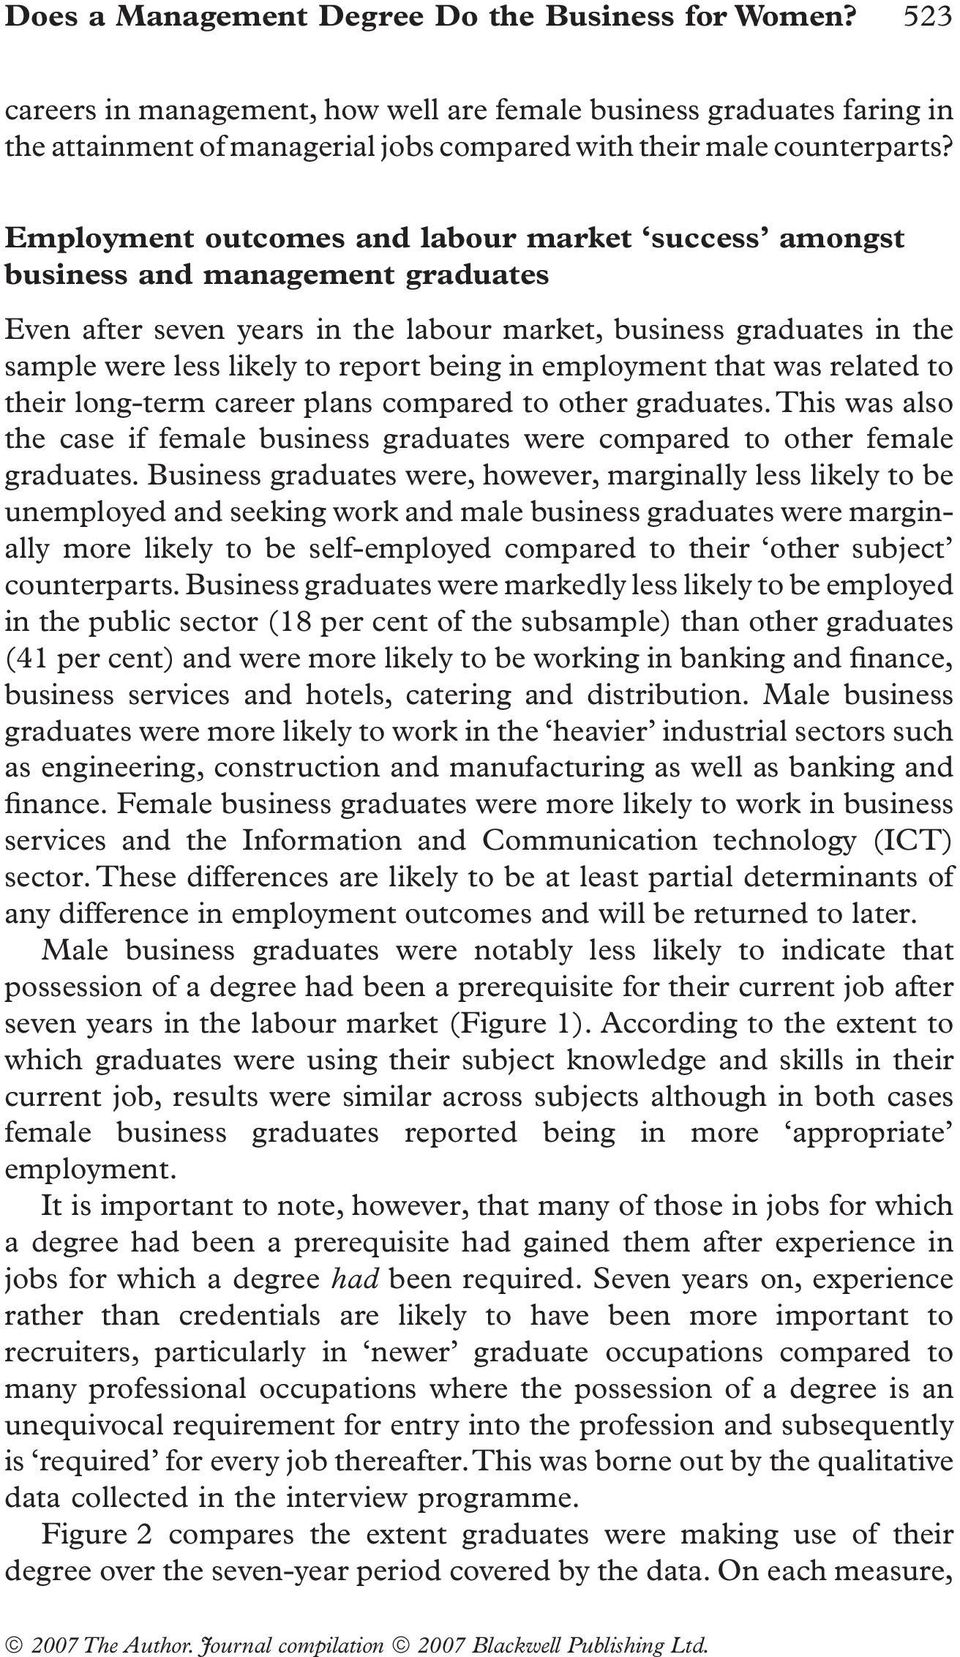 in employment that was related to their long-term career plans compared to other graduates. This was also the case if female business graduates were compared to other female graduates.